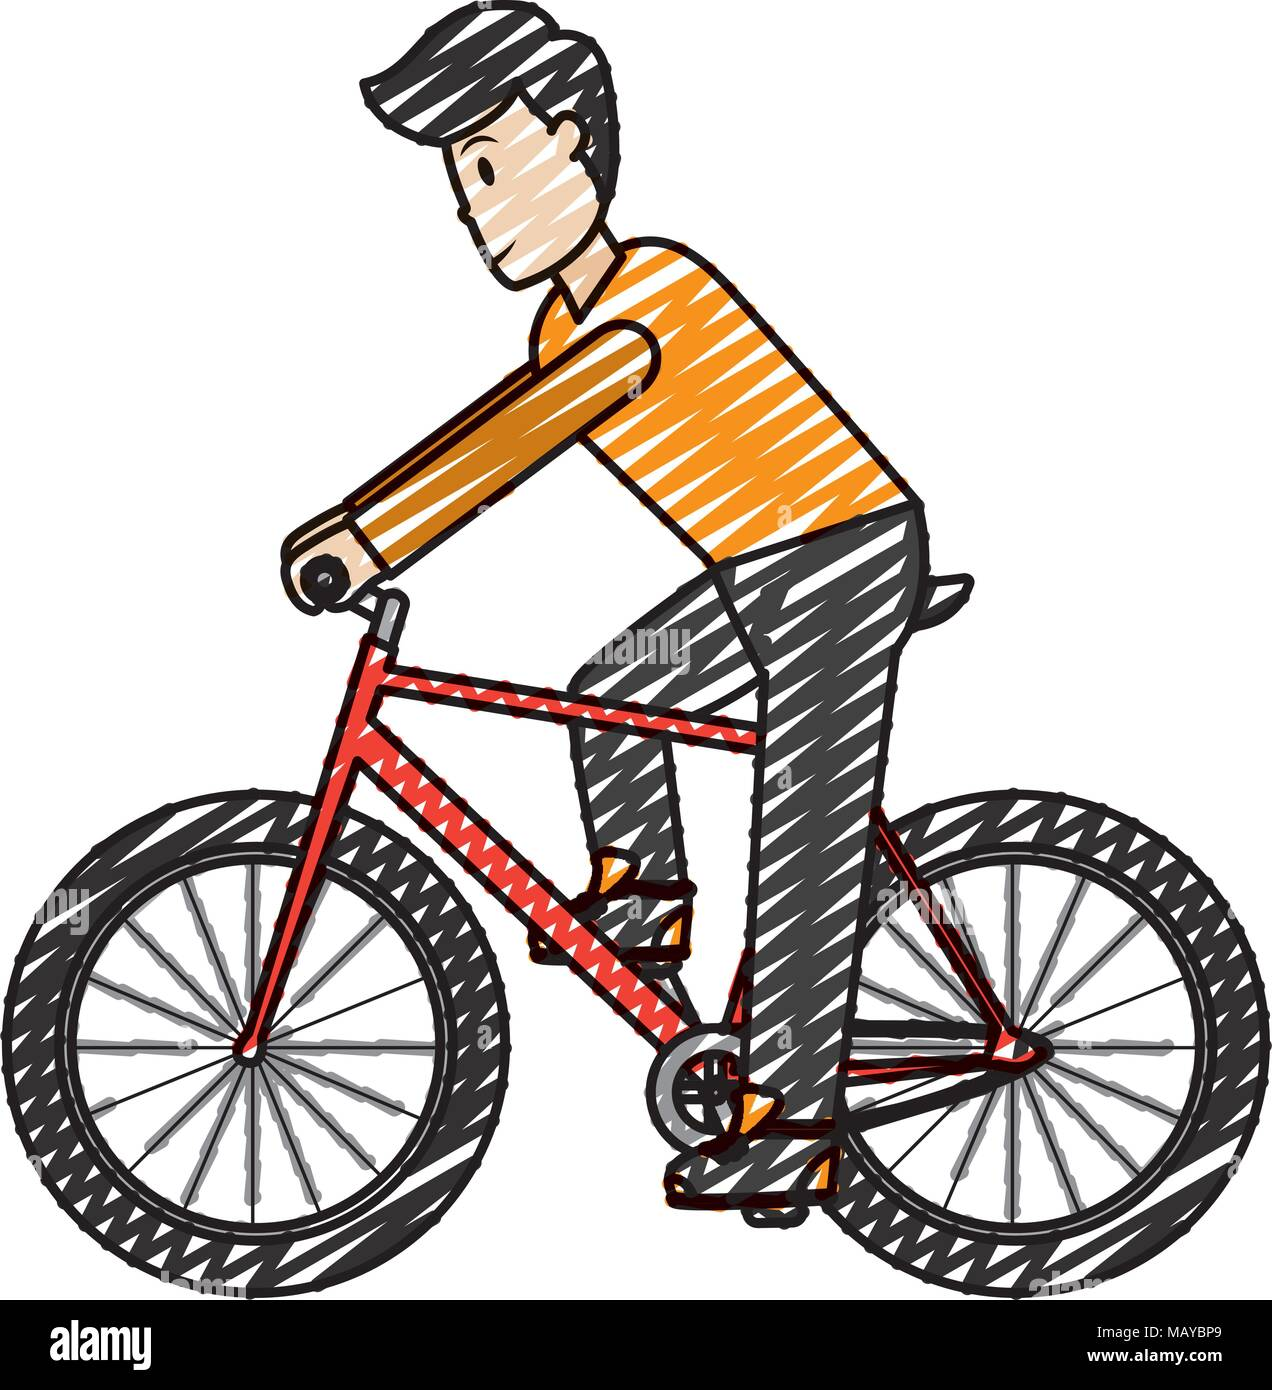 Doodle Man With Hairstyle And Clothes Ride Bicycle Stock Vector